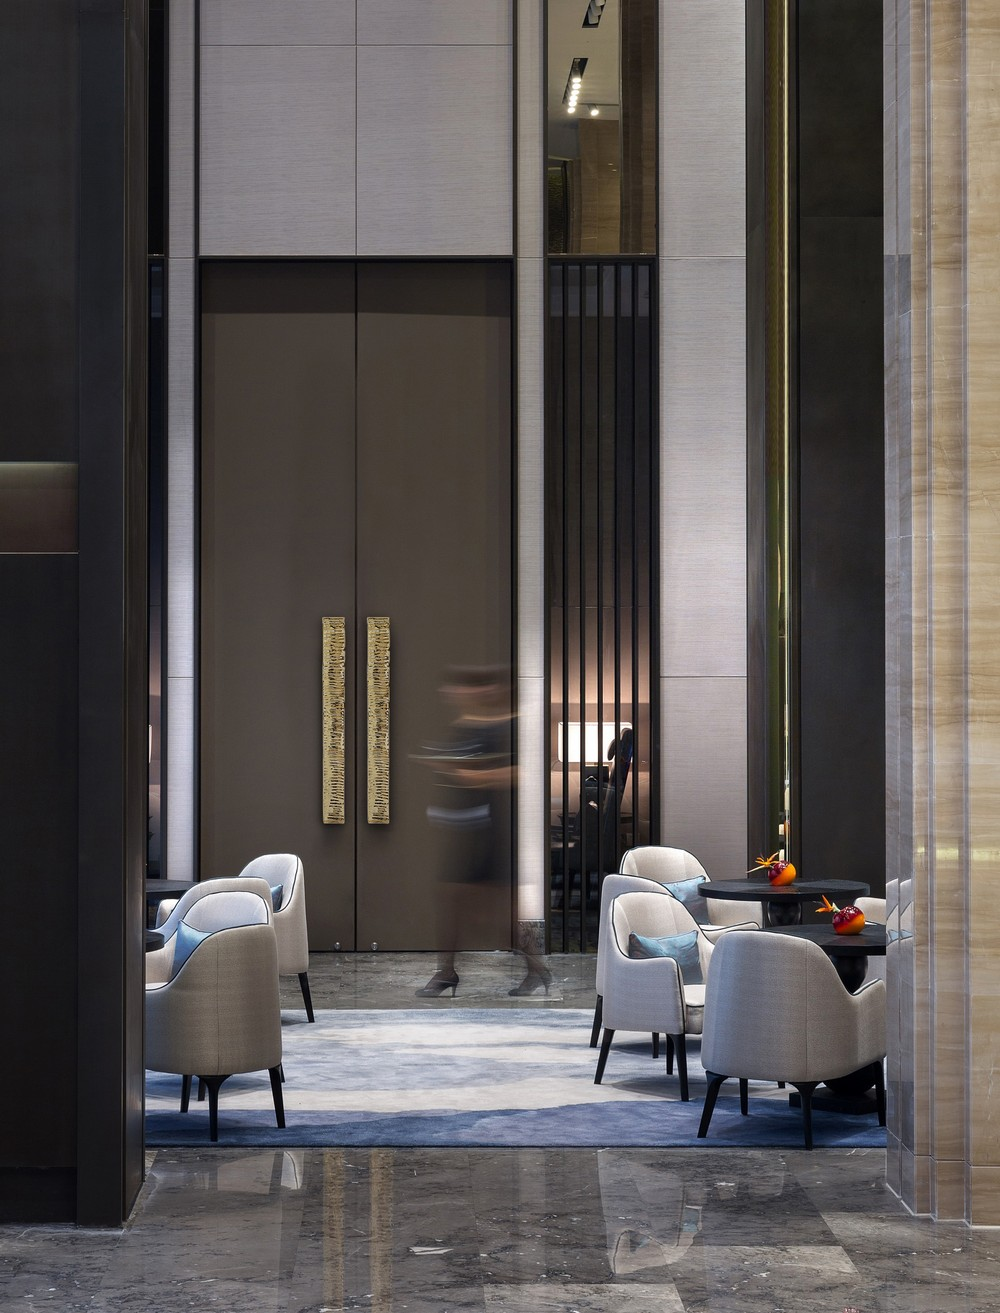 Hospitality Design The Best Door Pulls to Use in Fashionable Projects 9 hospitality design PullCast Inspirations: Admire 10 Striking Hospitality Design Projects Hospitality Design The Best Door Pulls to Use in Fashionable Projects 9